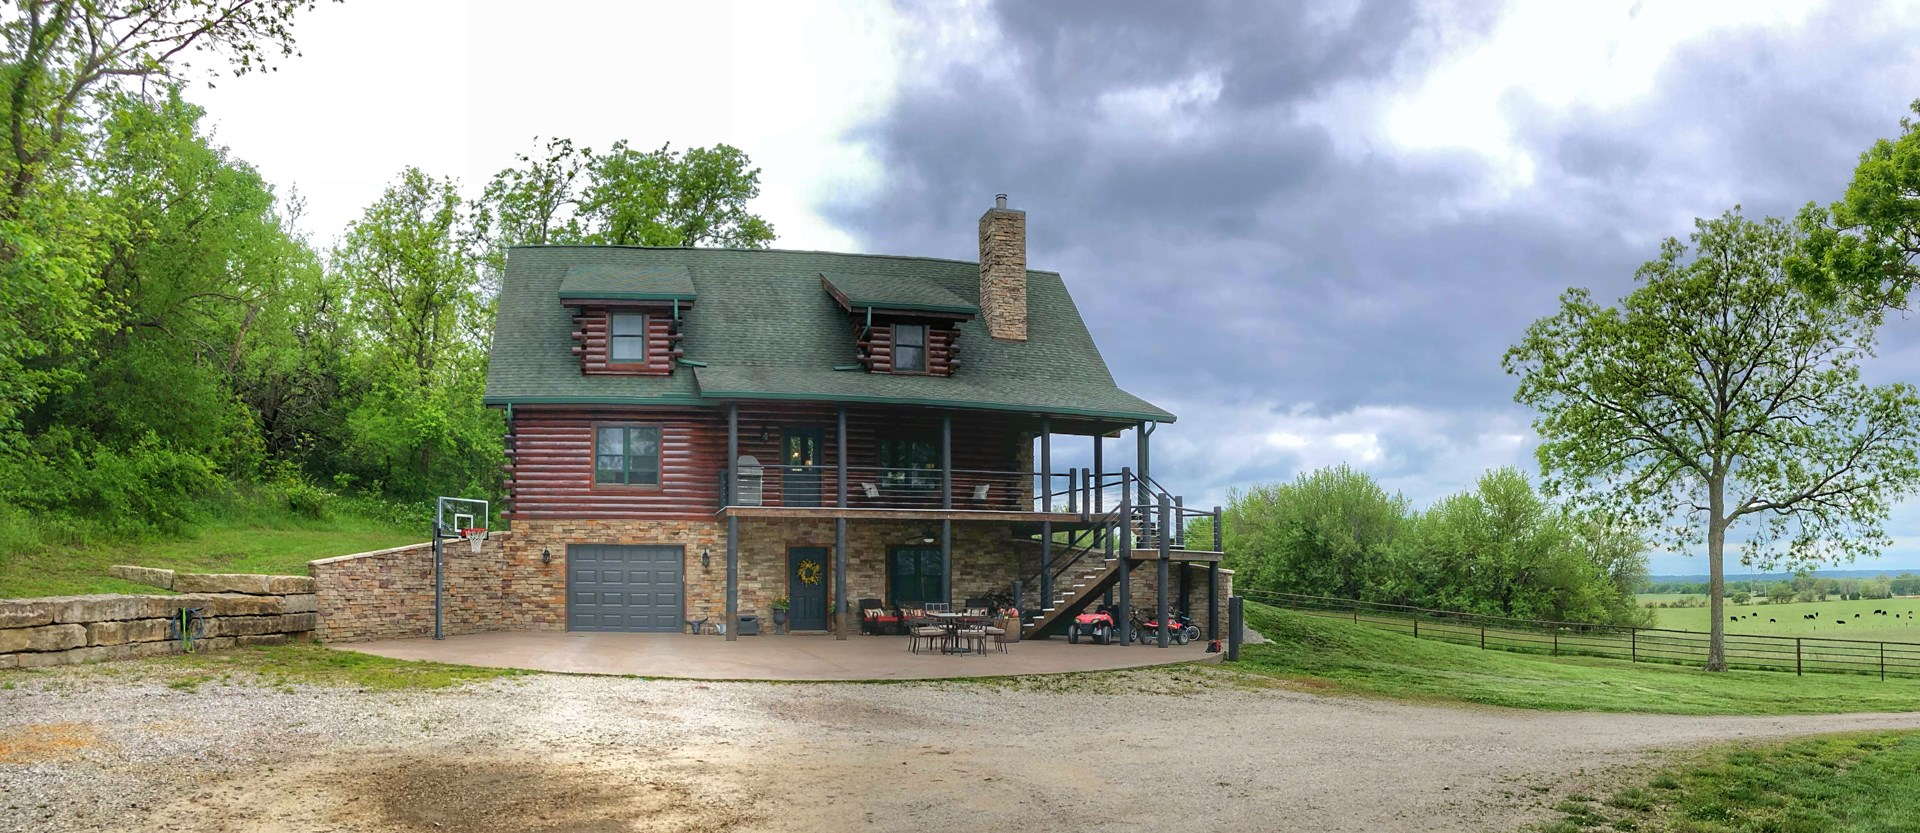 Beautiful Country Log Home on Acreage For Sale in Kansas